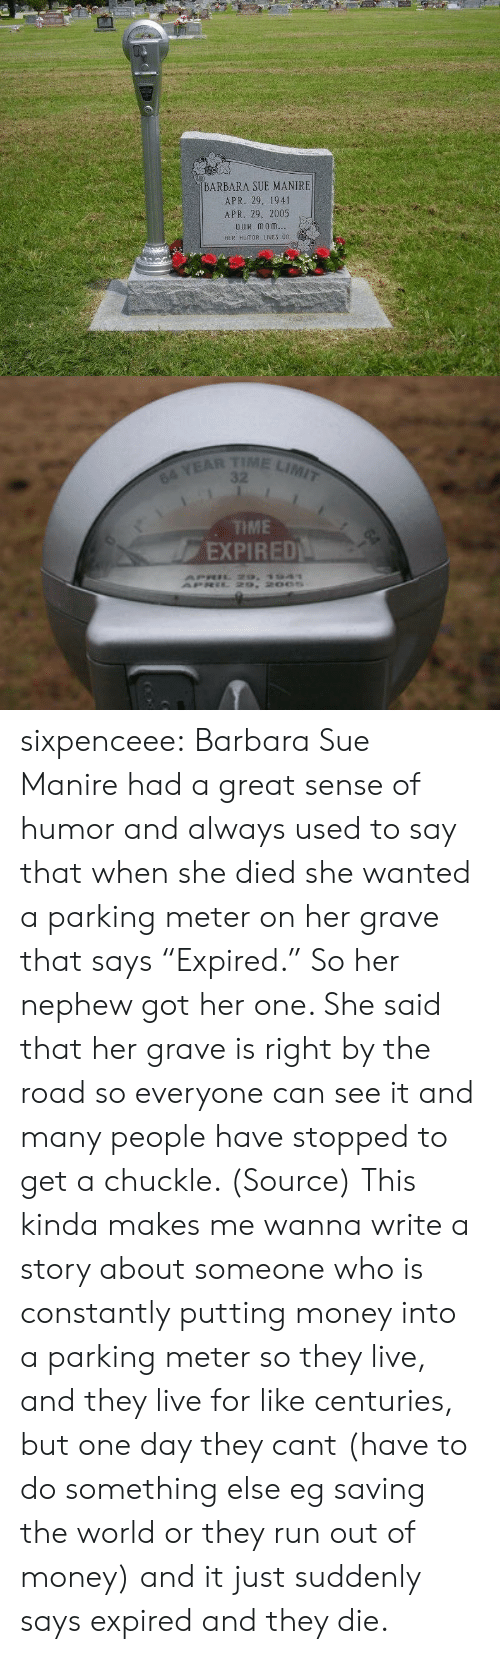 "snopes.com: BARBARA SUE MANIRE  APR. 29. 1941  APR. 29, 2005  OuR monm  HER HUMOR IES 0n   TIME LIMIT  64 YEAR  TME  EXPIRED sixpenceee: Barbara Sue Manire had a great sense of humor and always used to say that when she died she wanted a parking meter on her grave that says ""Expired."" So her nephew got her one. She said that her grave is right by the road so everyone can see it and many people have stopped to get a chuckle. (Source)   This kinda makes me wanna write a story about someone who is constantly putting money into a parking meter so they live, and they live for like centuries, but one day they cant (have to do something else eg saving the world or they run out of money) and it just suddenly says expired and they die."